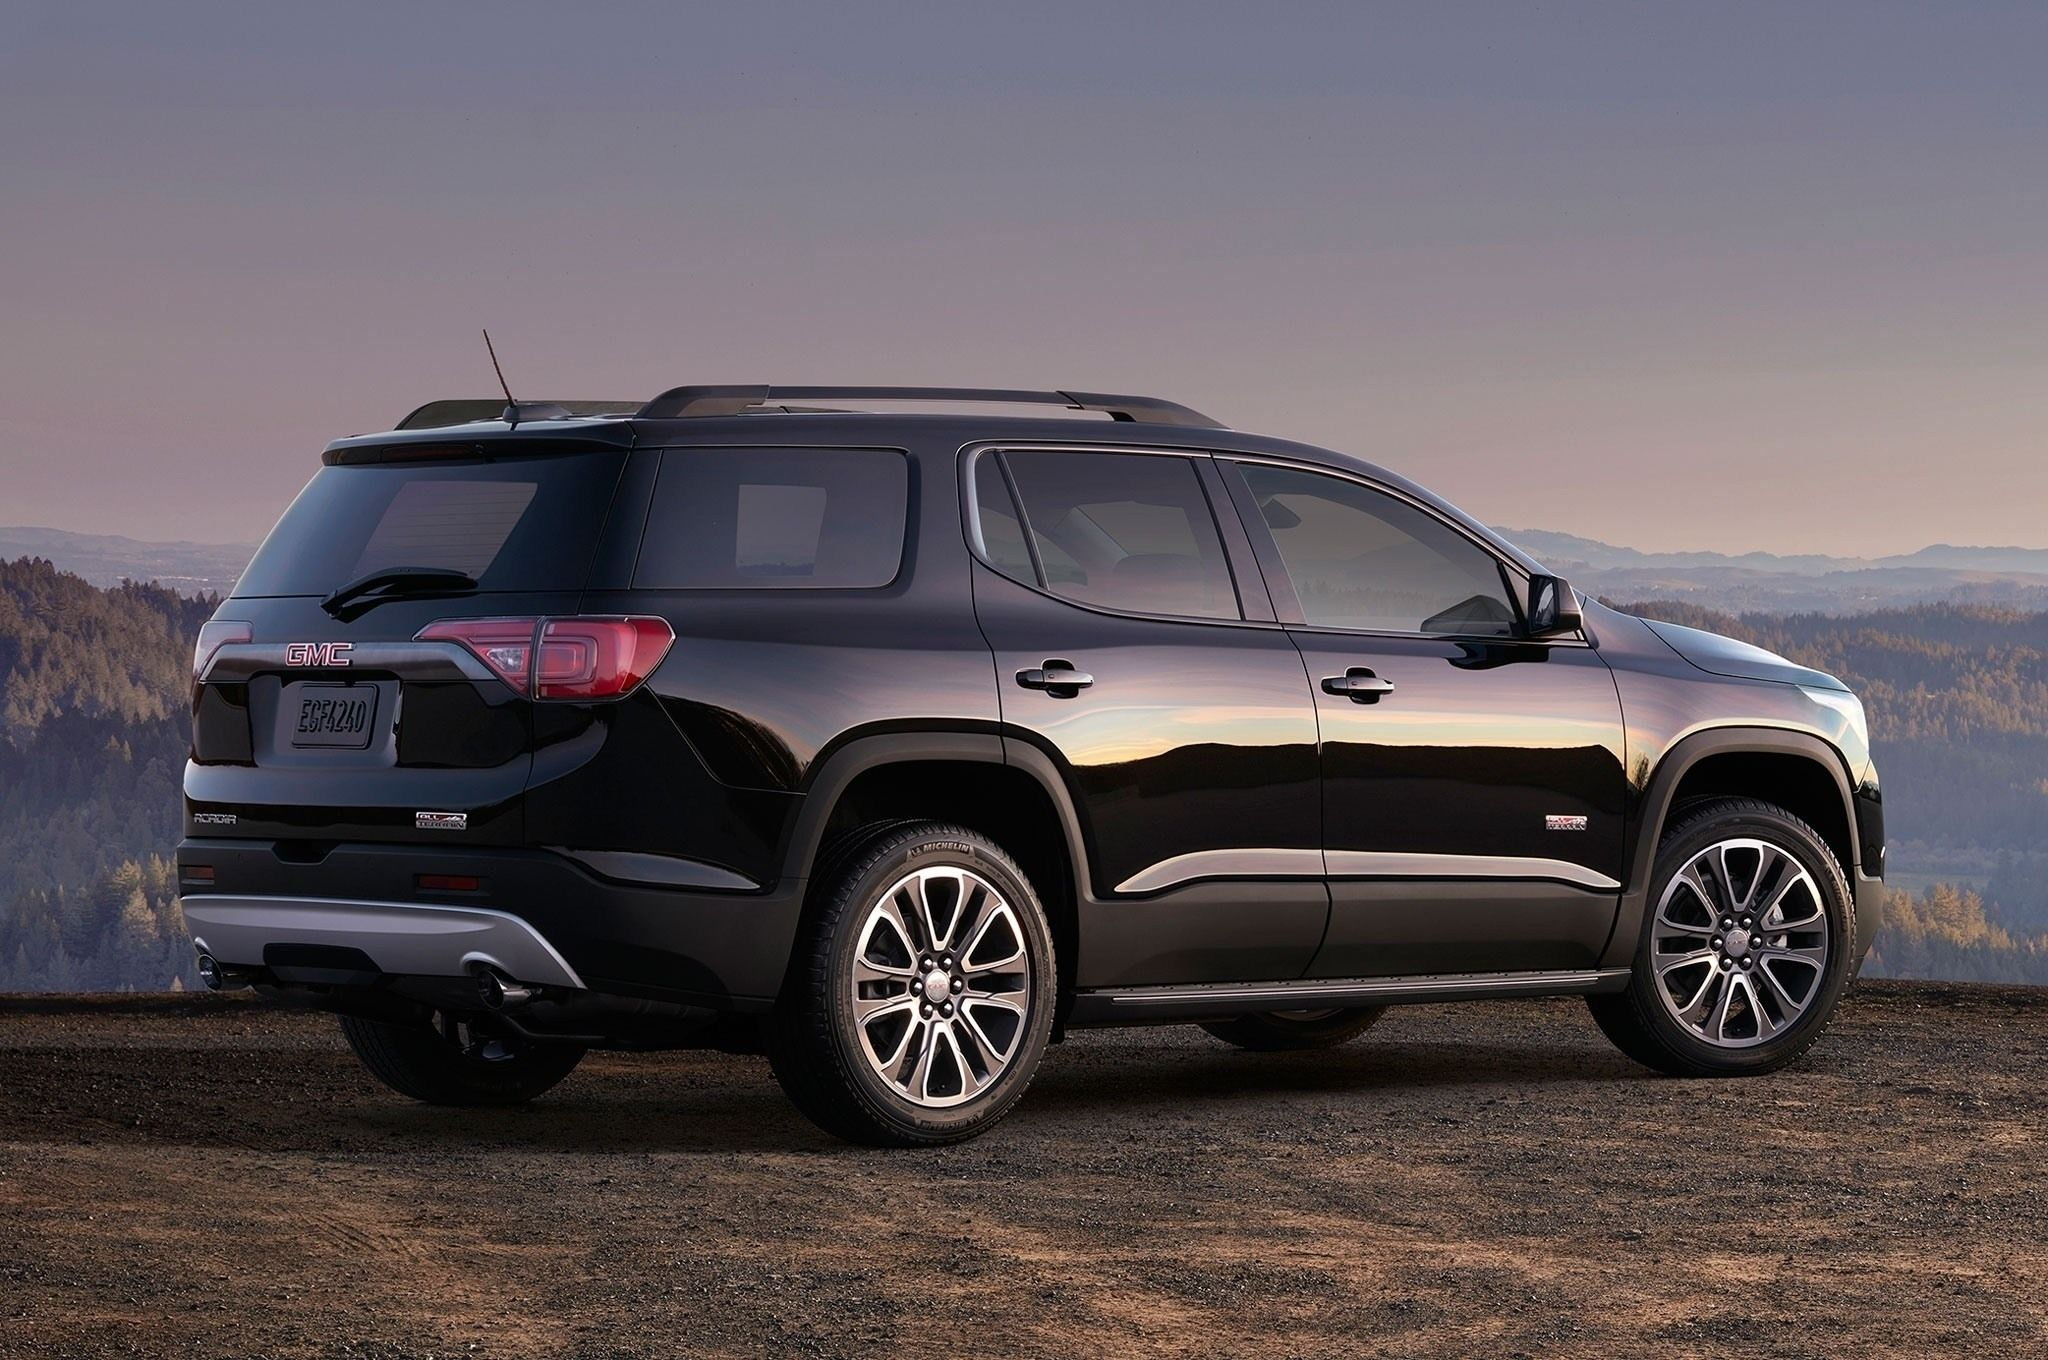 Gmc Acadia Towing Capacity >> New 2019 Gmc Acadia Towing Capacity Release Review Car 2018 Gmc